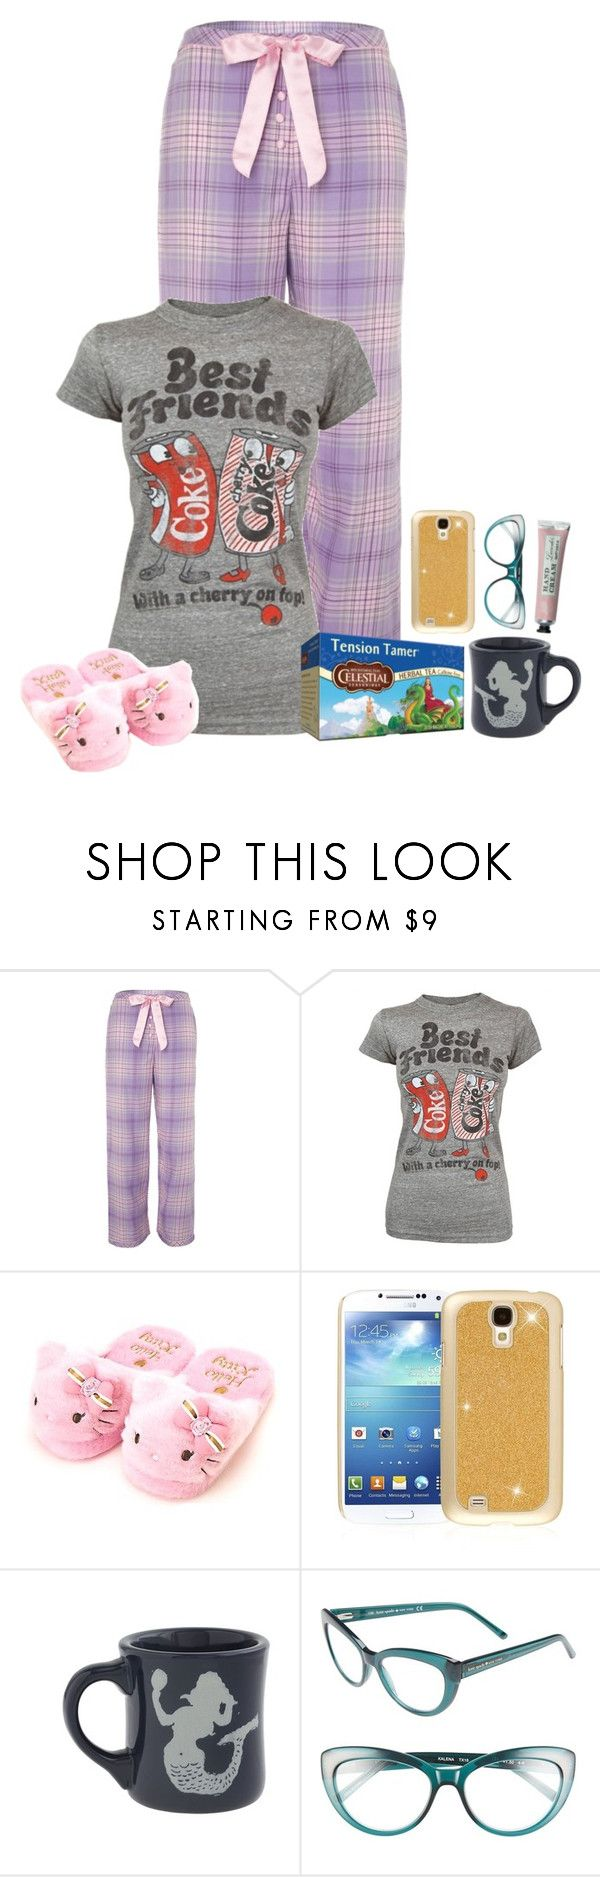 """Untitled #1093"" by emmzizleez888 ❤ liked on Polyvore featuring Cyberjammies, Junk Food Clothing, Celestial Seasonings, Hello Kitty, Samsung, J.Crew, Kate Spade and vintage"